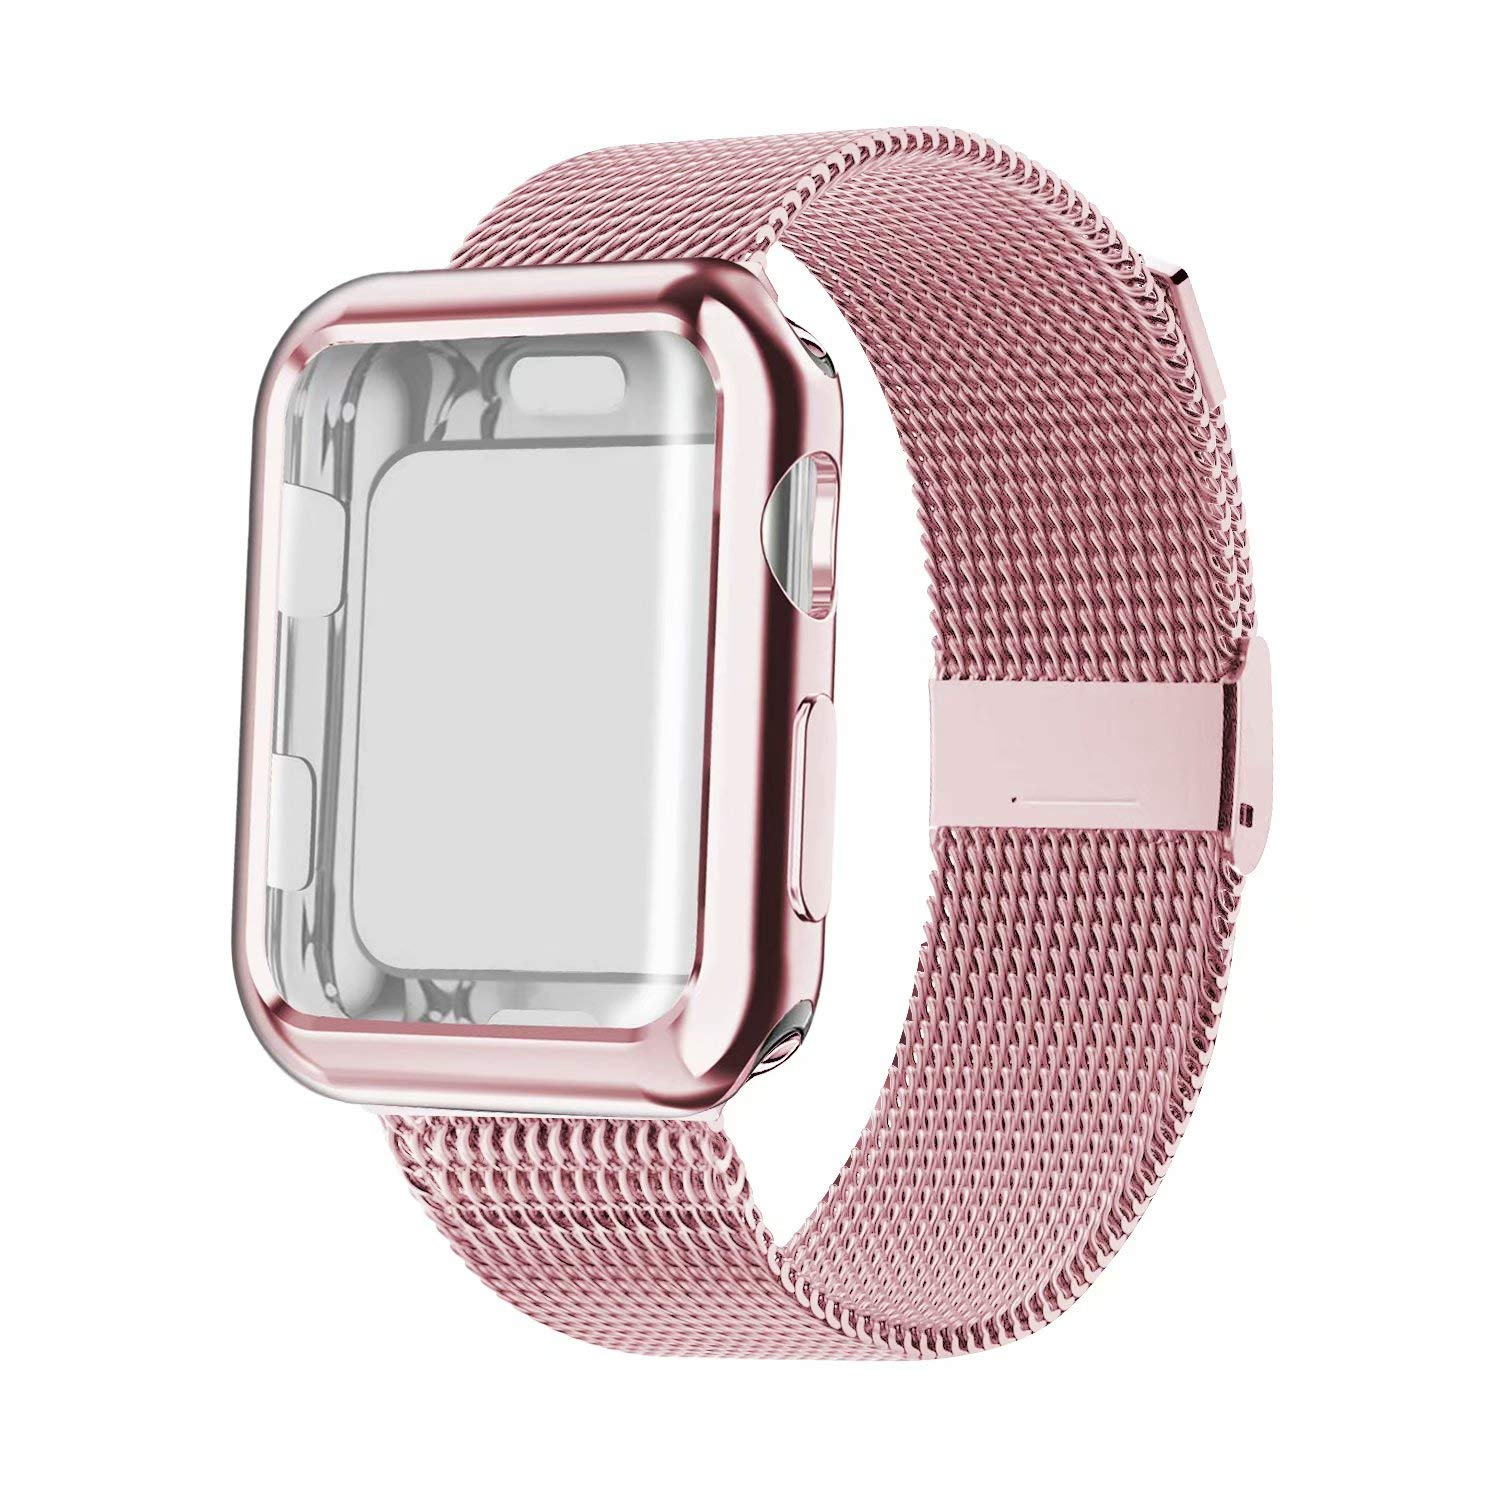 case+Strap for apple Watch 4 band Mlianese Loop band 42mm 38mm iwatch series 5 4 3 2 1 band 44mm 40mm correa pulseira bracelet image